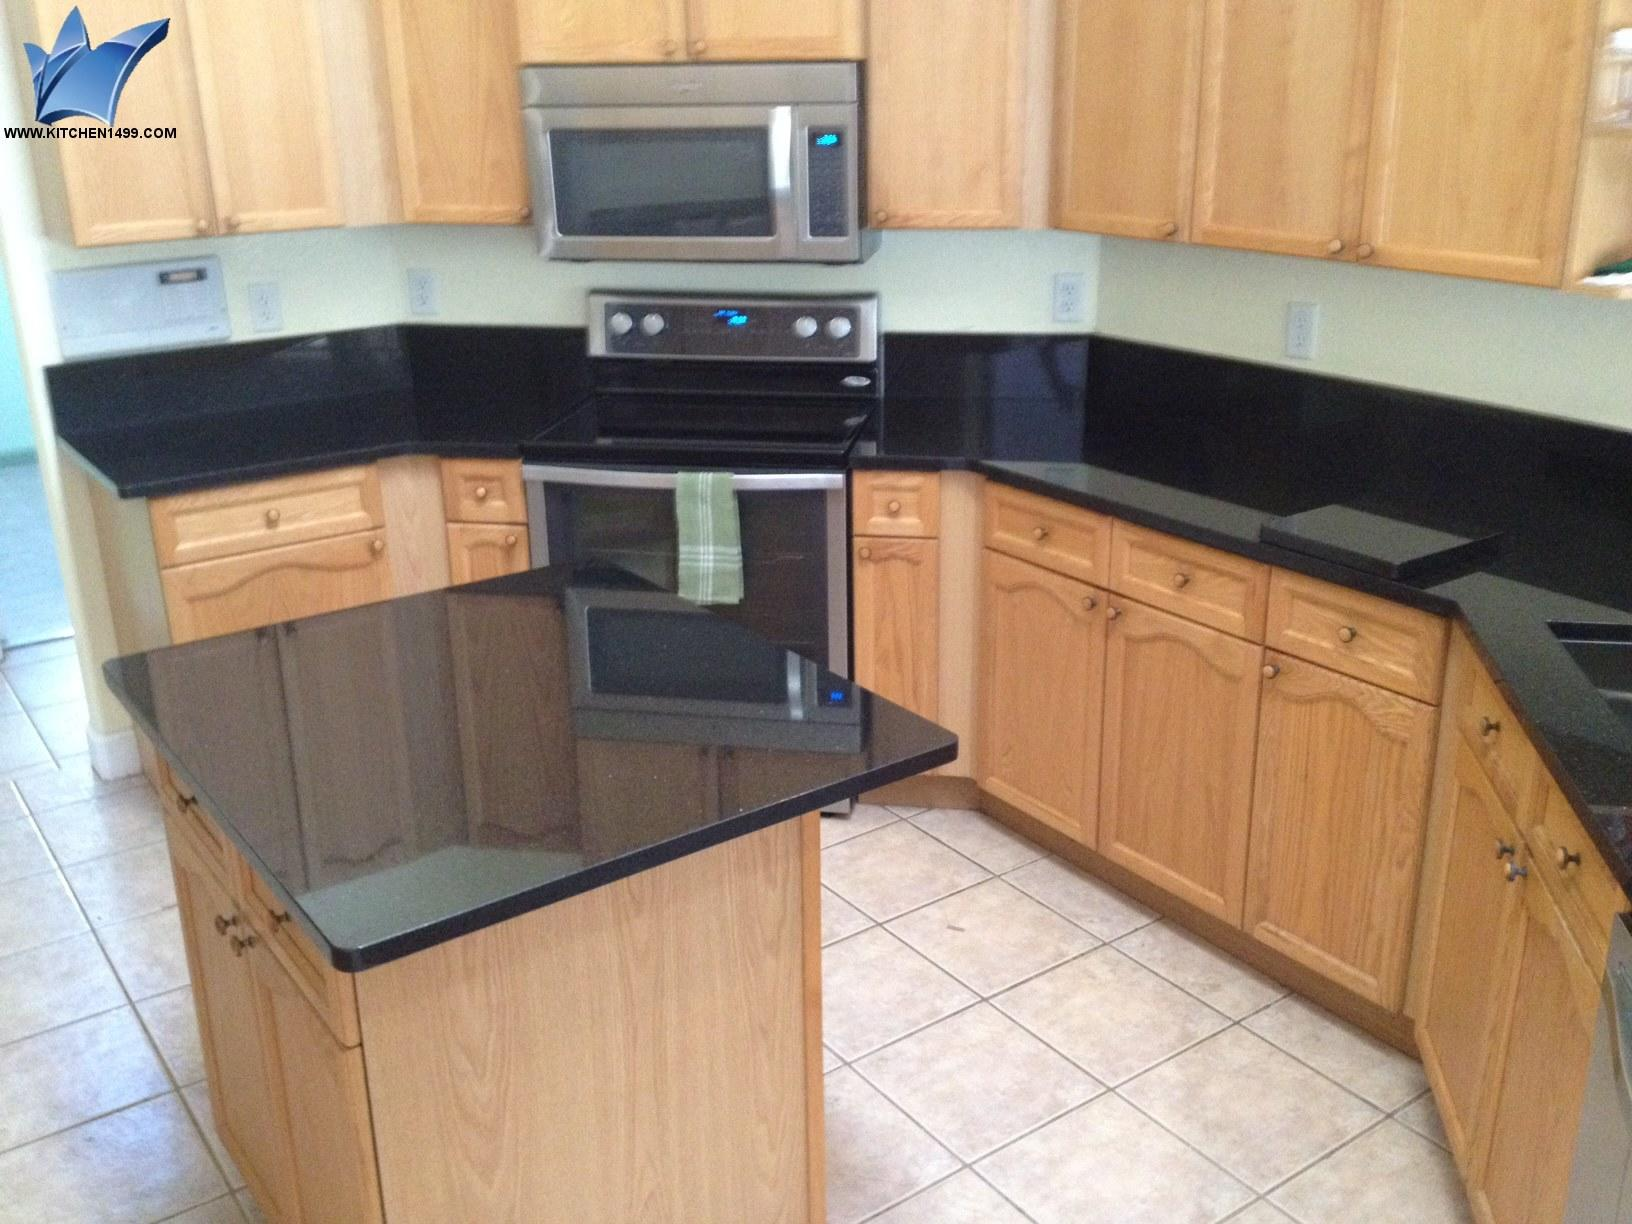 tops kitchen cabinets pompano different kinds of countertops king and granite beach